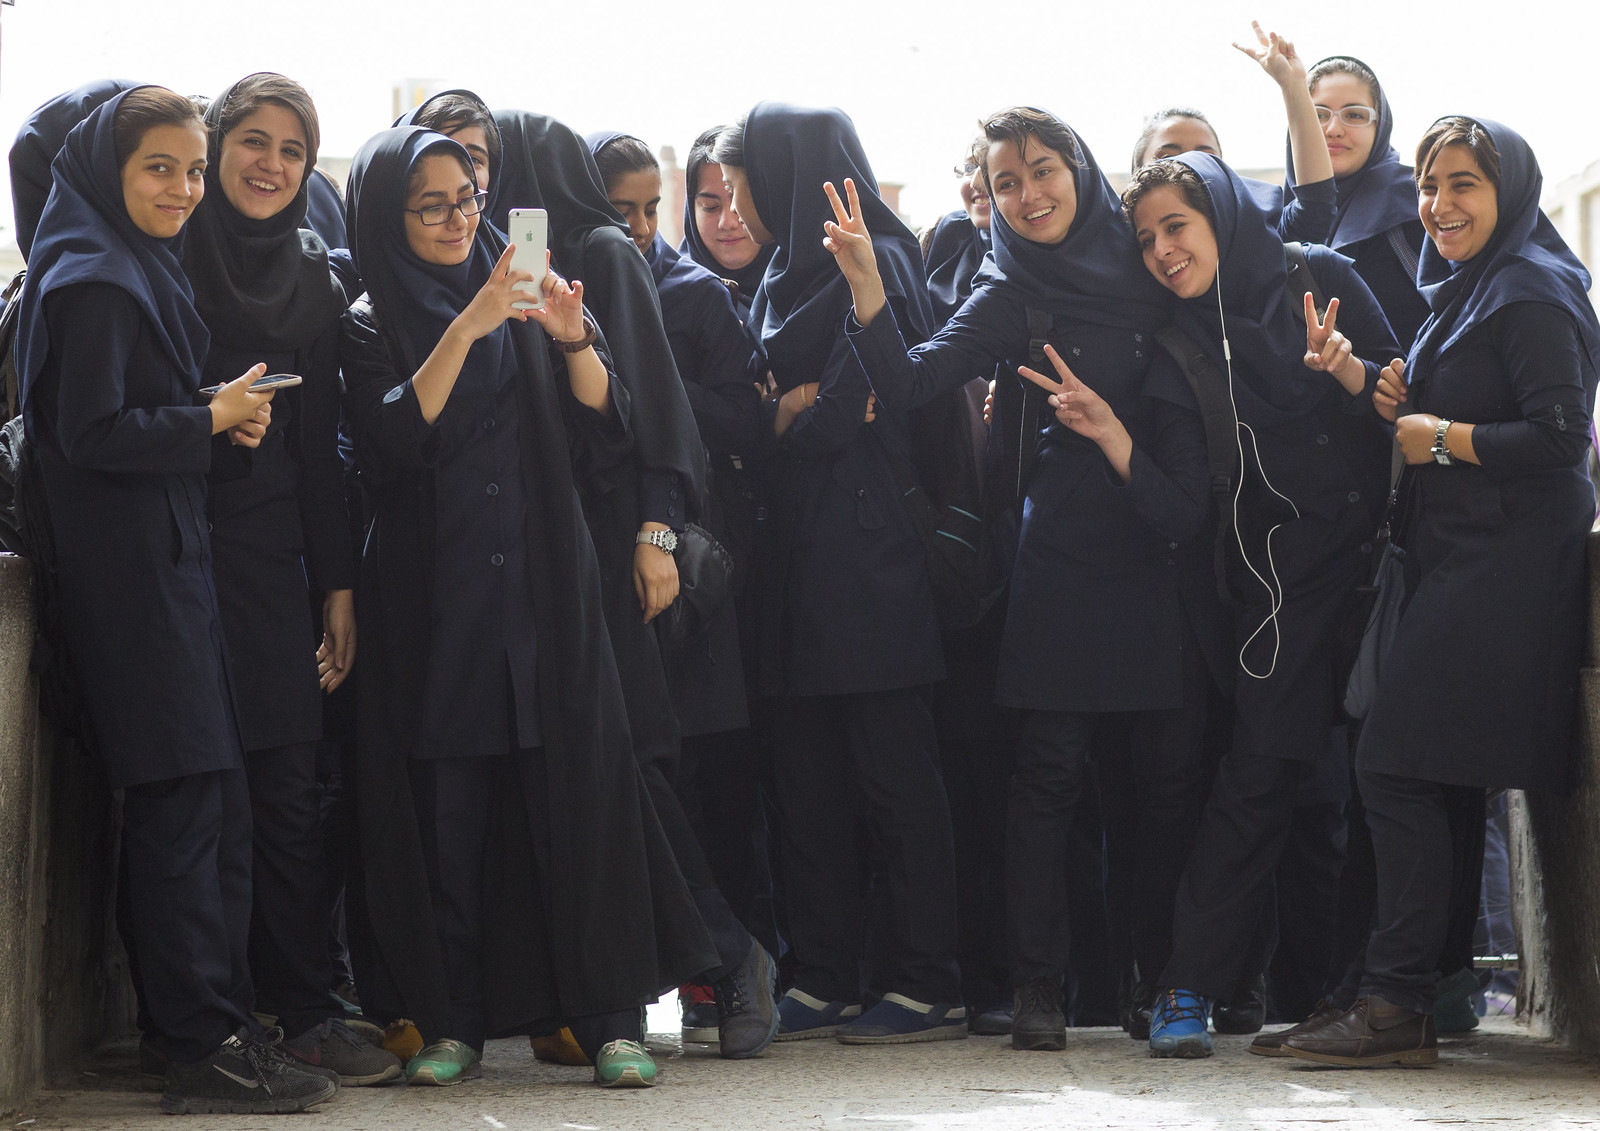 Students in Iran